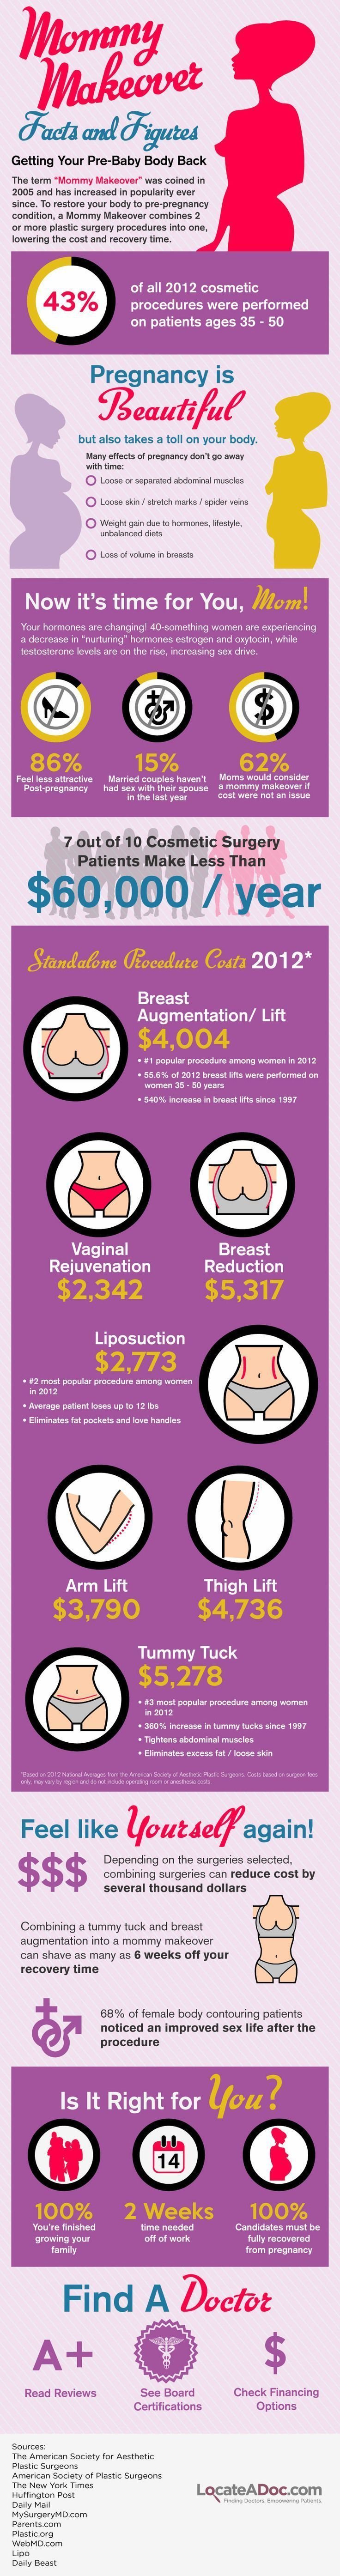 Infographic Mommy Makeover facts and figures Infographic Mommy Makeover facts and figures ,